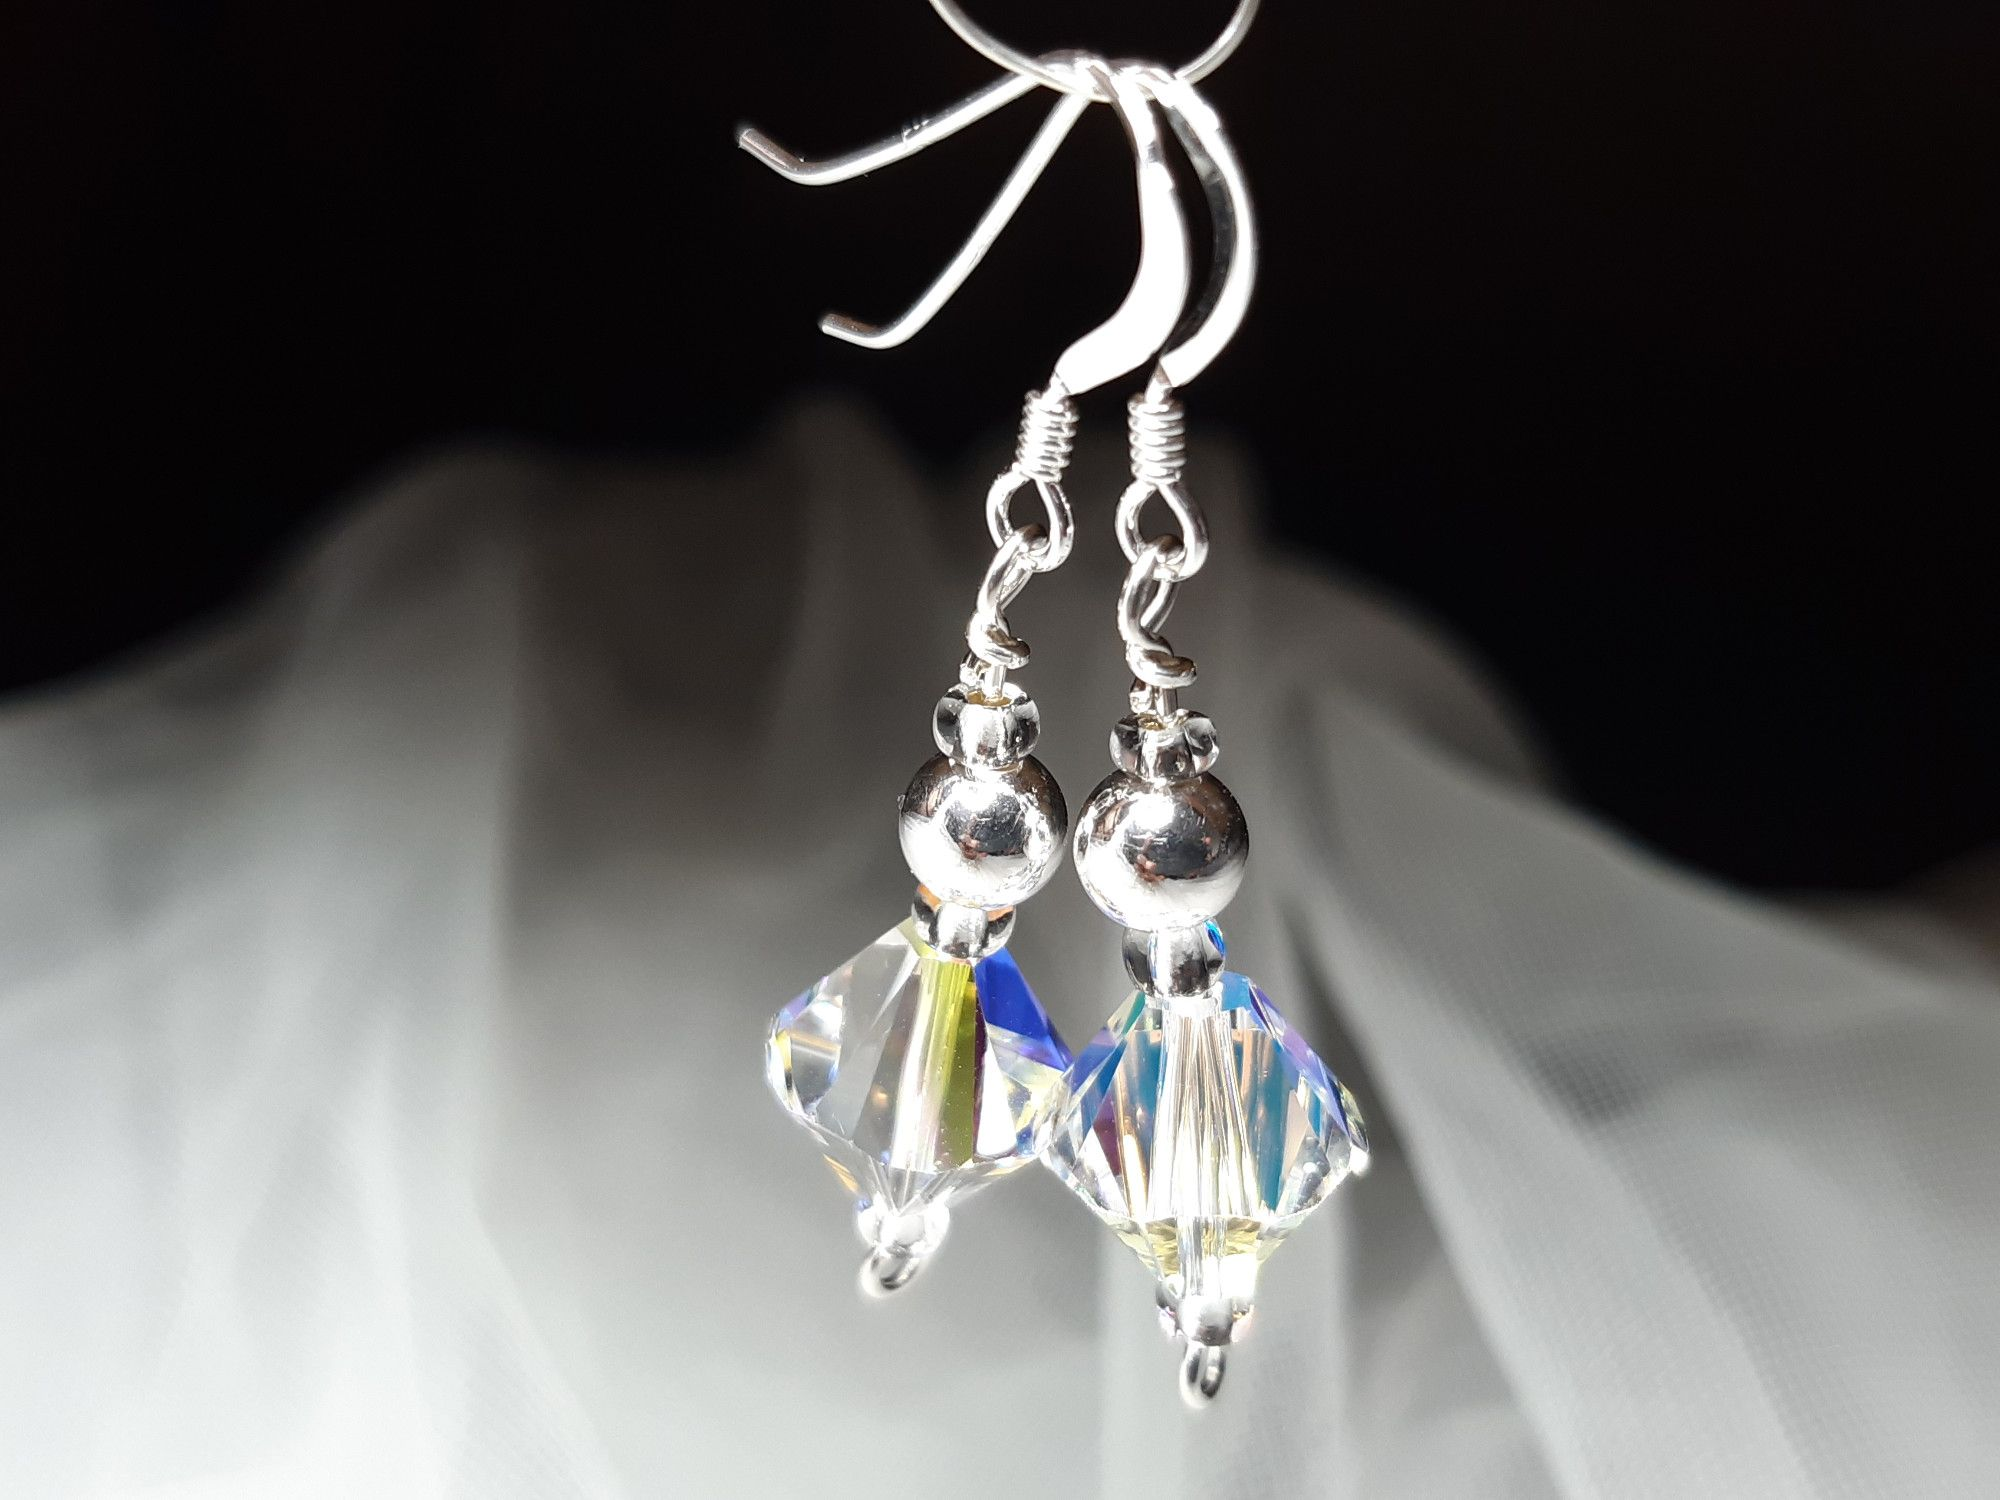 Occasion-bridal-wedding-swarovski crystal+sterling silver earrings-3